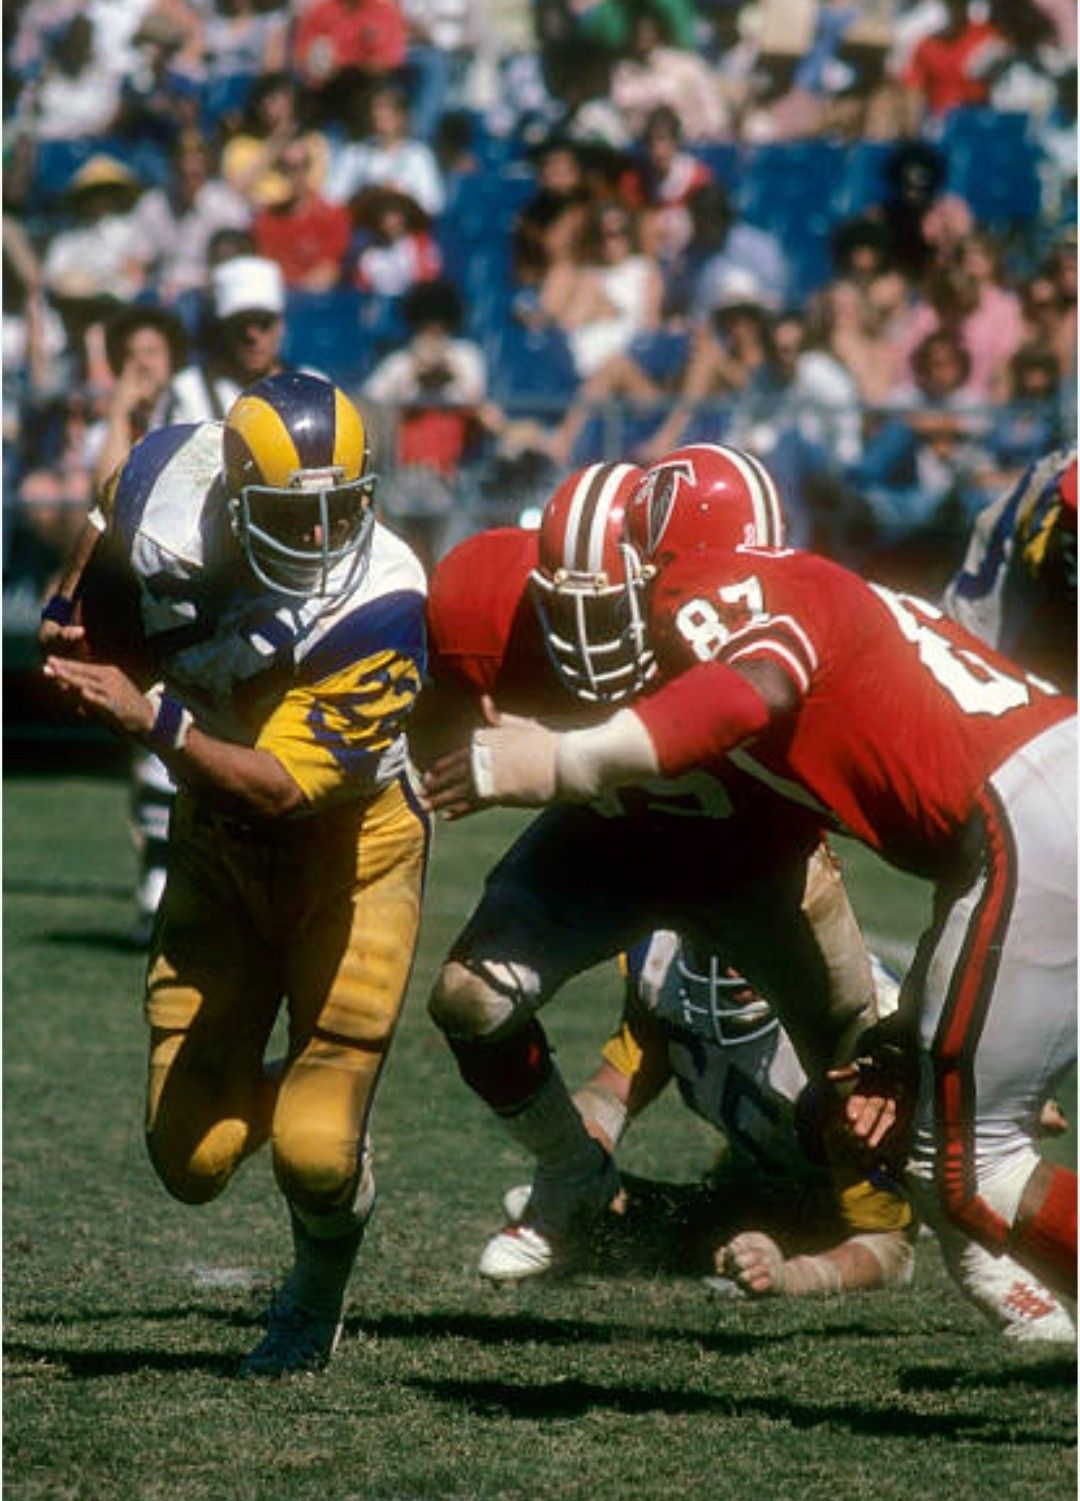 Pin By Benny Davenport On Falcons Football In 2020 Falcons Football Rams Football La Rams Football